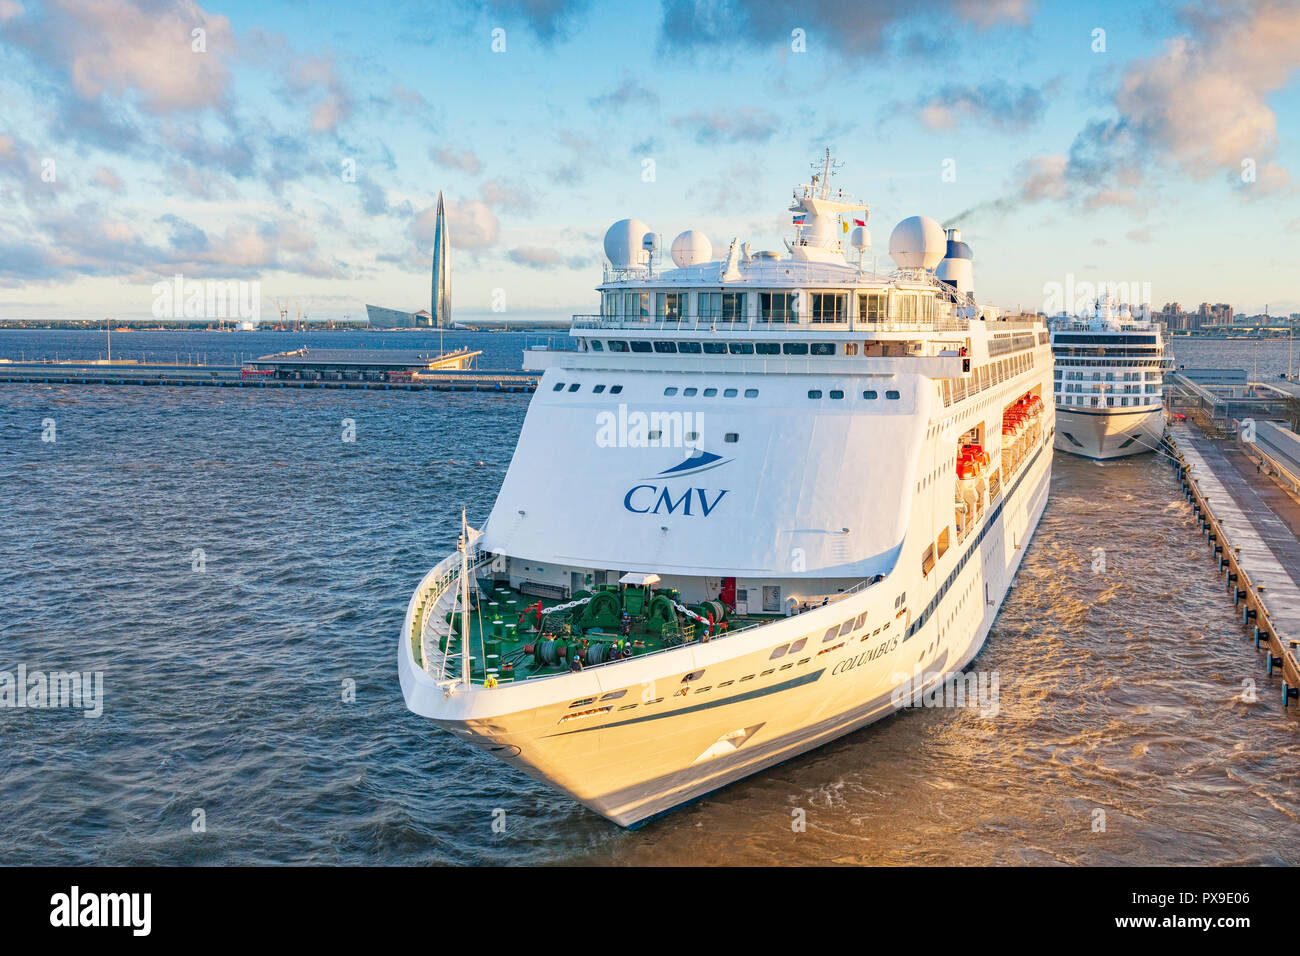 18 September 2018: St Petersburg, Russia - Cruise ships at the Cruise Terminal, with the tallest building in Europe in the background, the Gazprom Tow - Stock Image